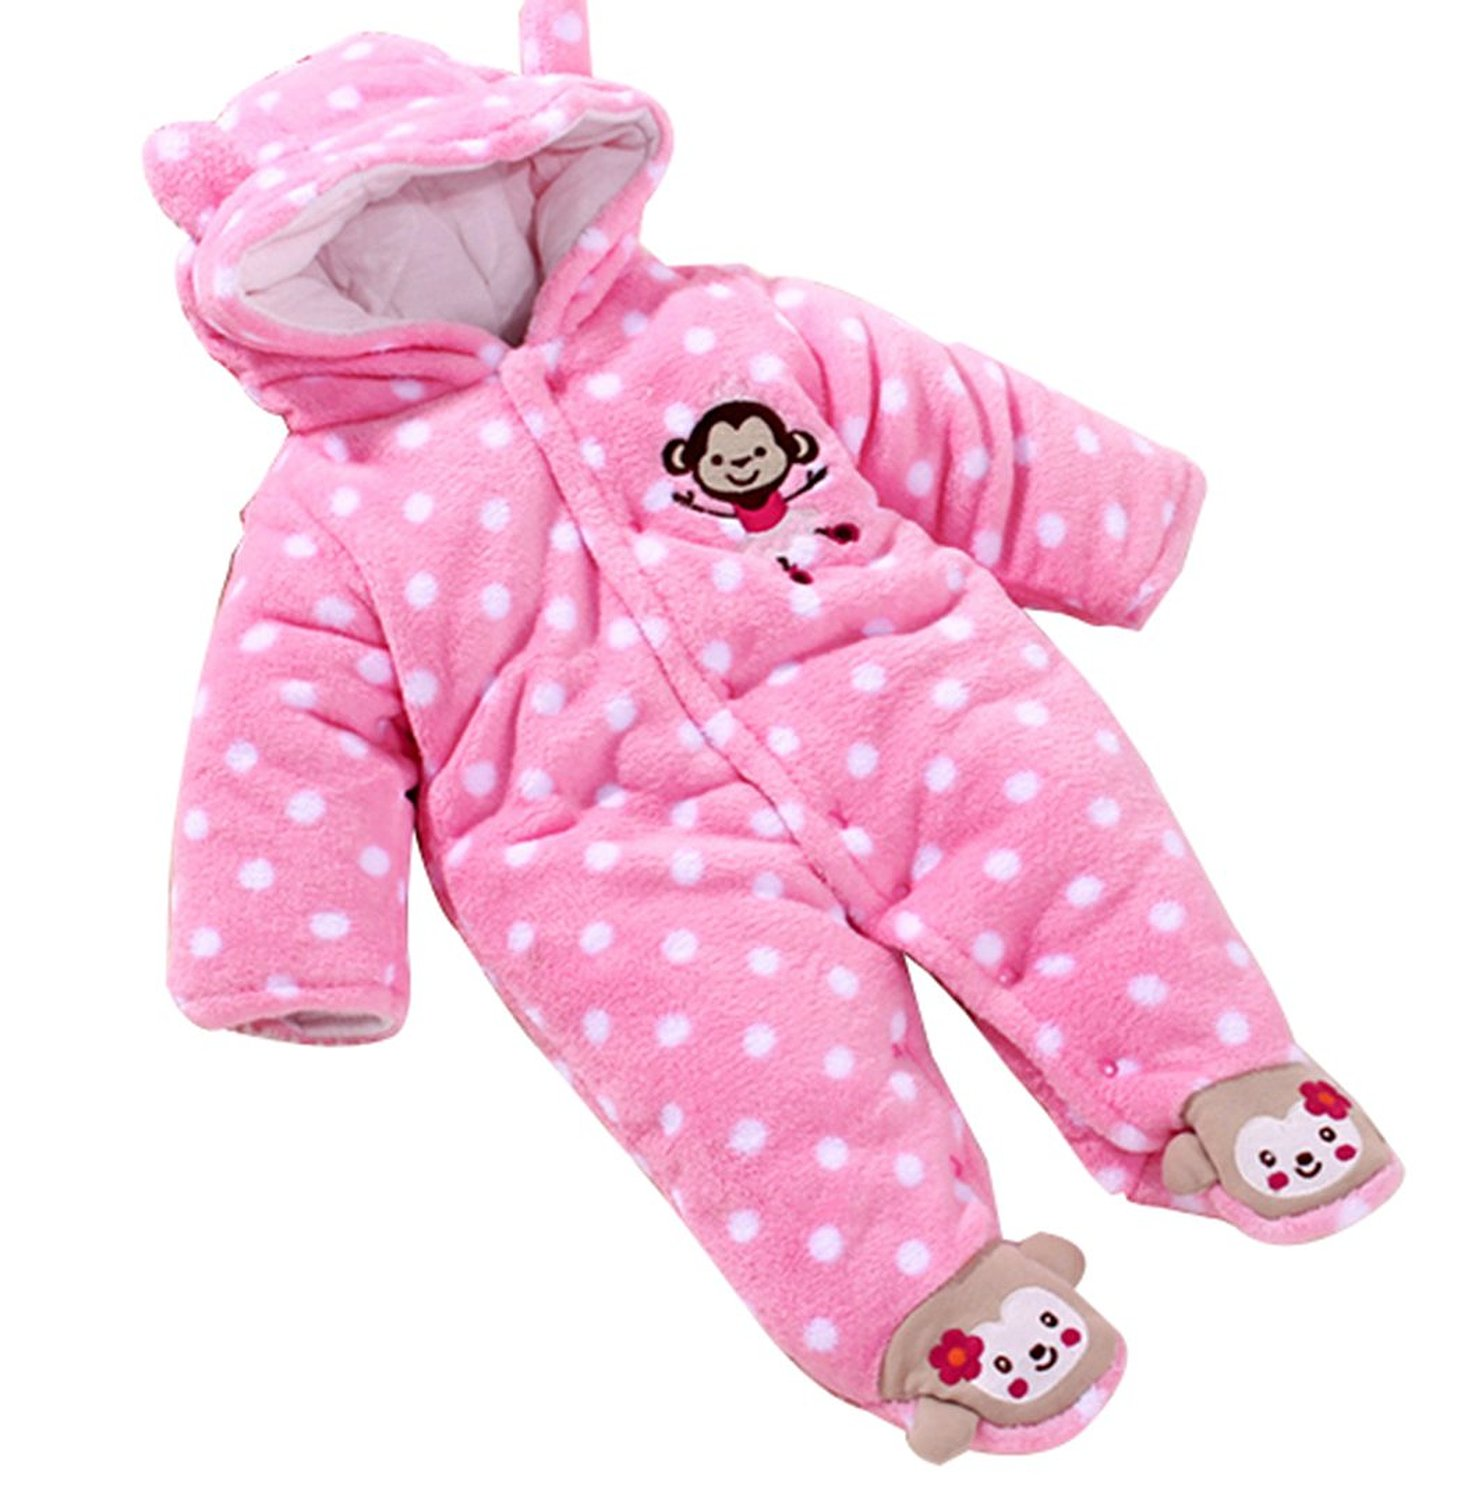 New Pictures Of 0 3 Baby Girl Clothes Cutest Baby Clothing And